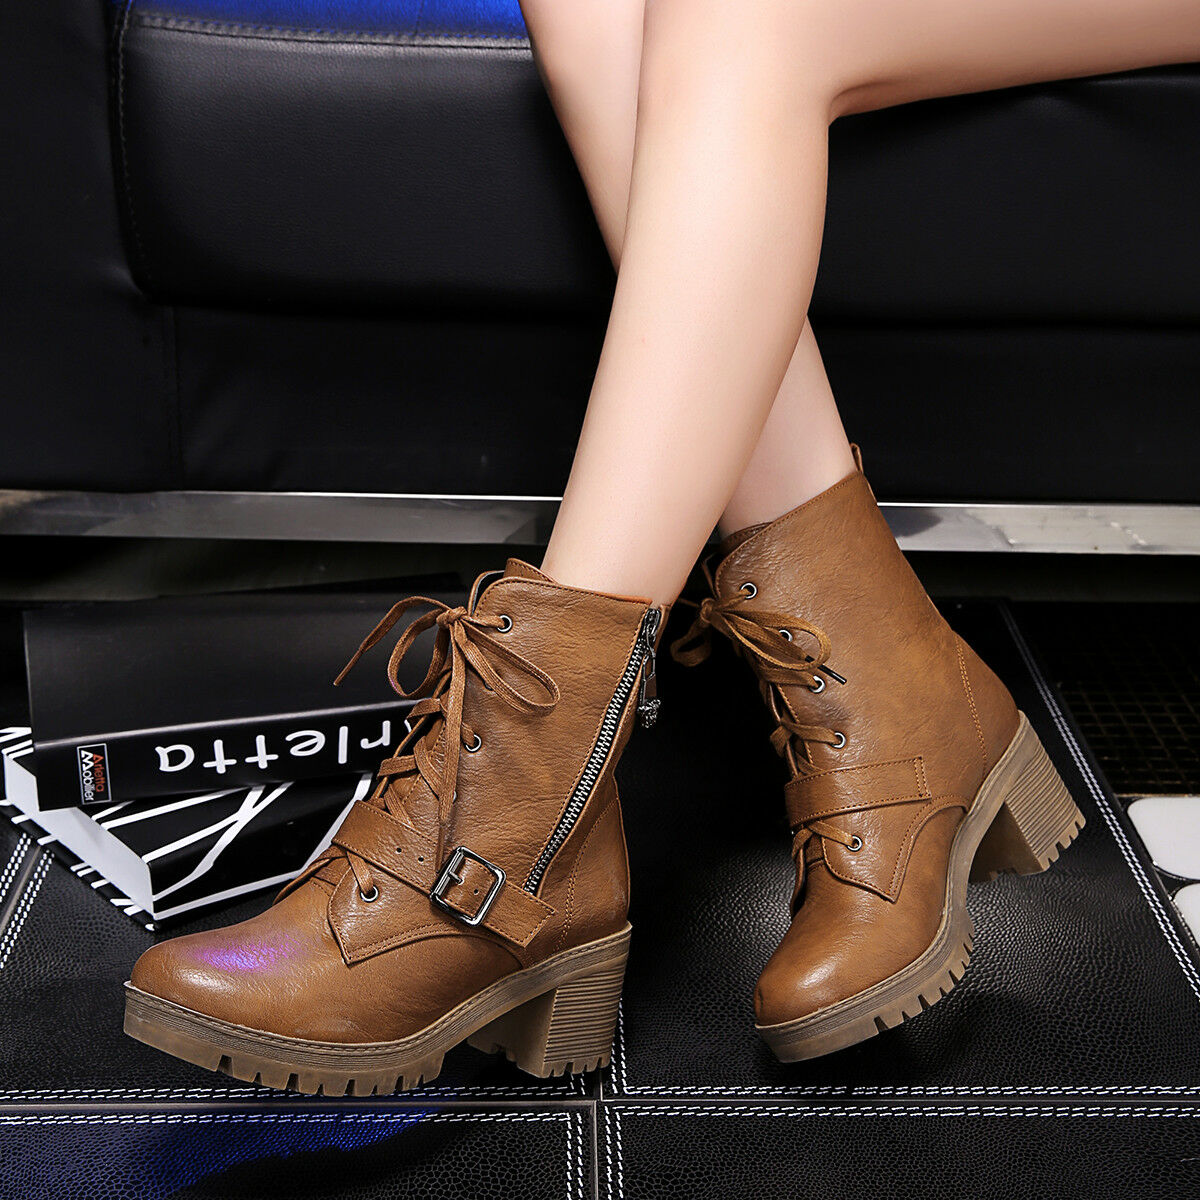 Women's Lace Up Ankle Boots Chunky Heels Faux Leather Round Toe Riding shoes Zip